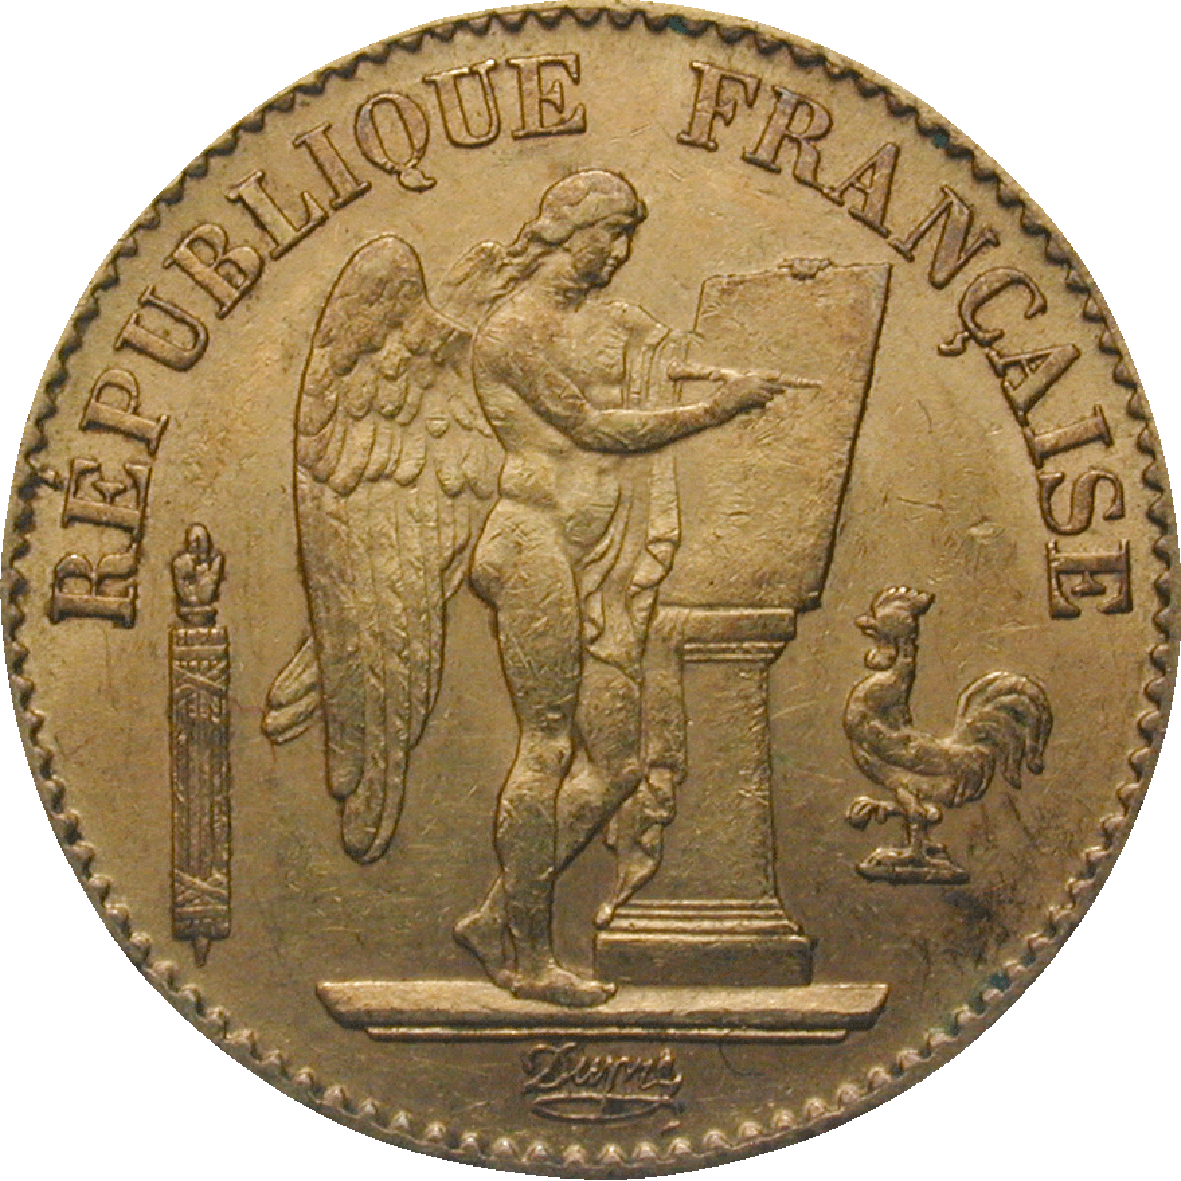 Republic of France, 20 Francs 1895 (obverse)